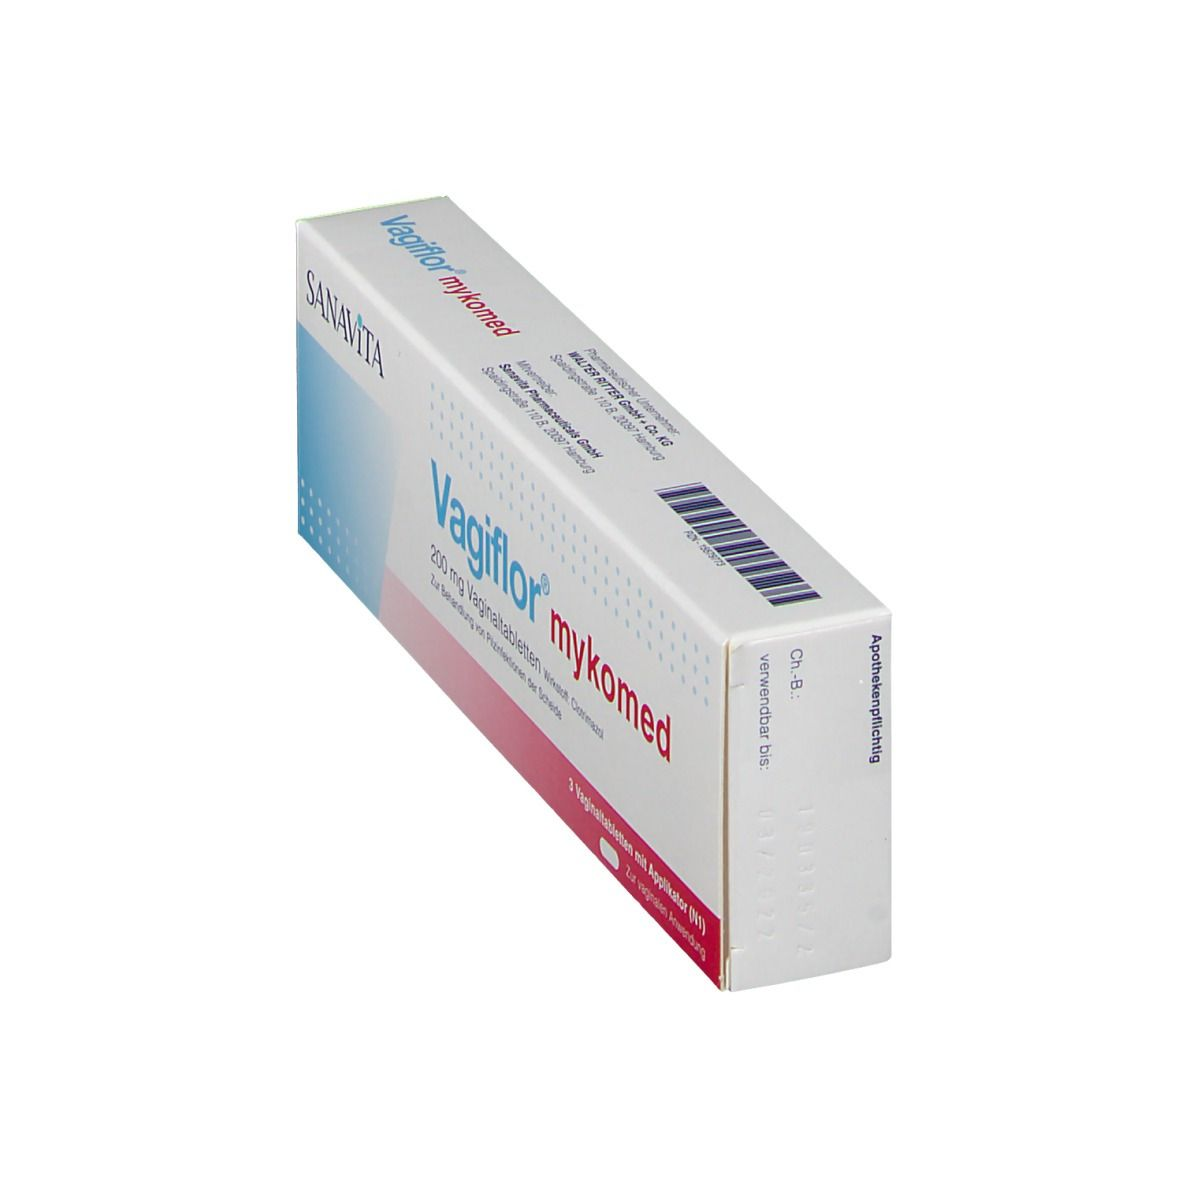 Vagiflor® Mykomed 200 mg